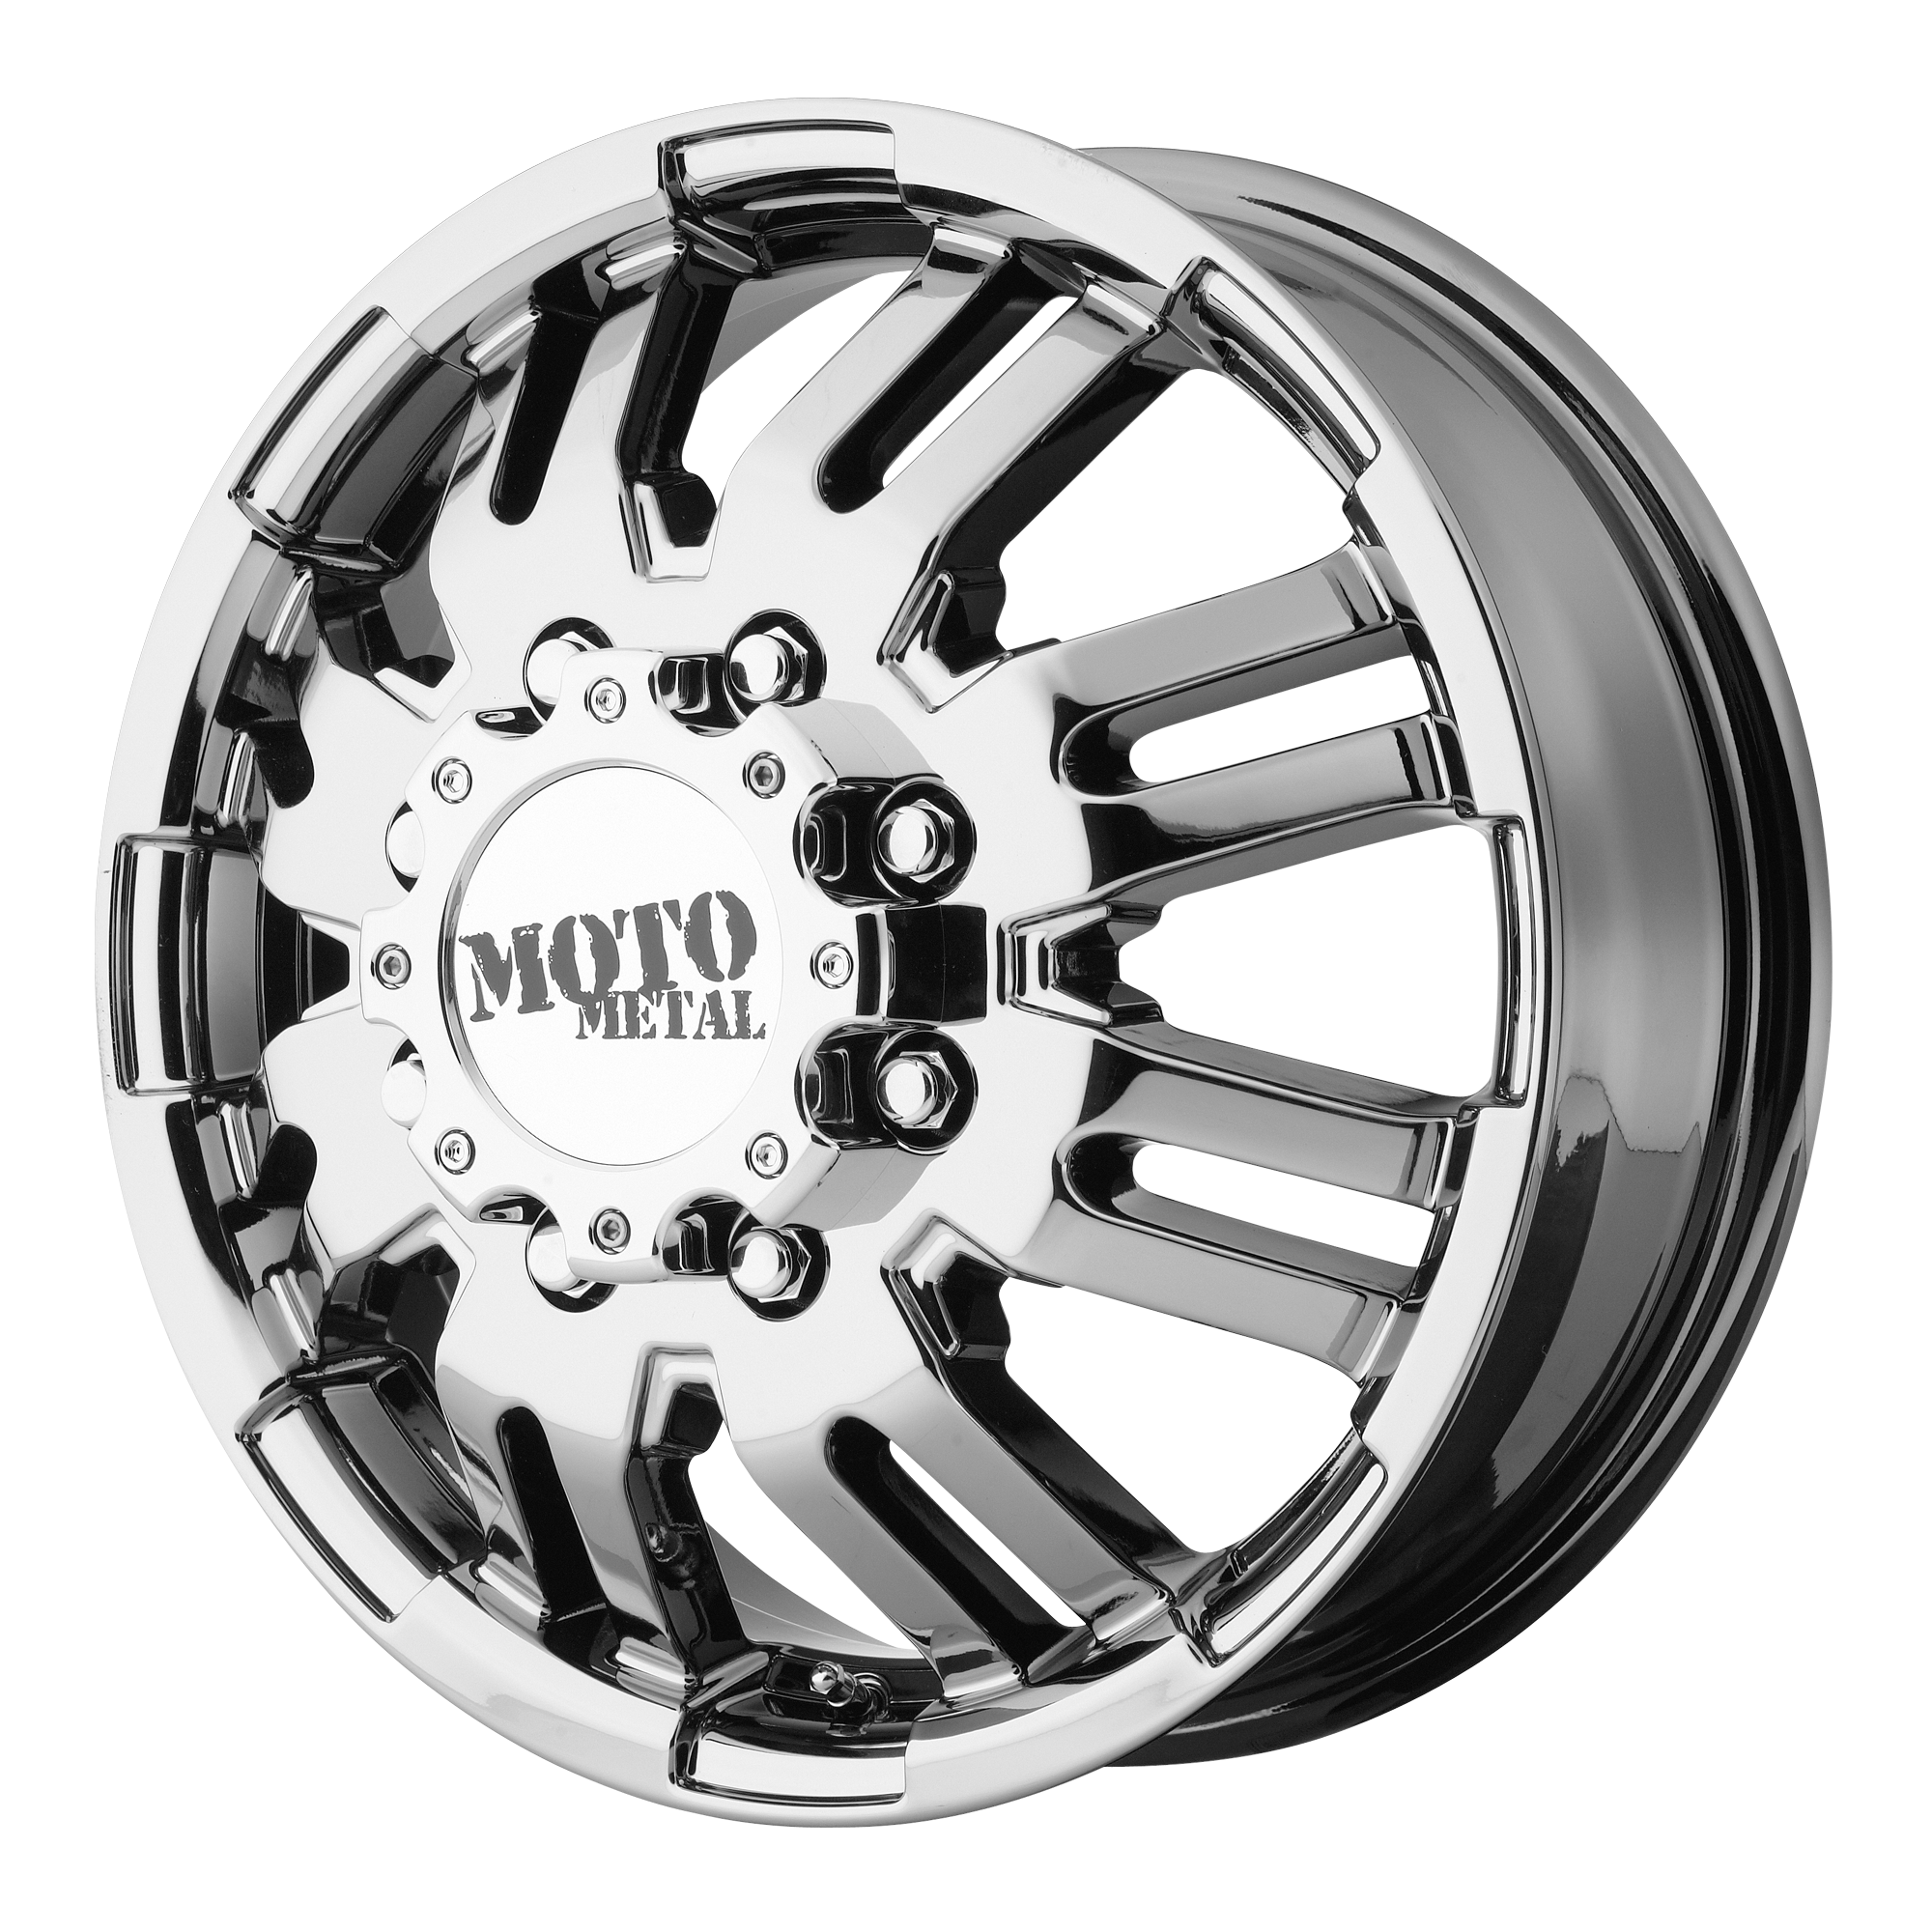 Moto Metal Offroad Wheels MO963 DUALLY PVD DUALLY (FR)